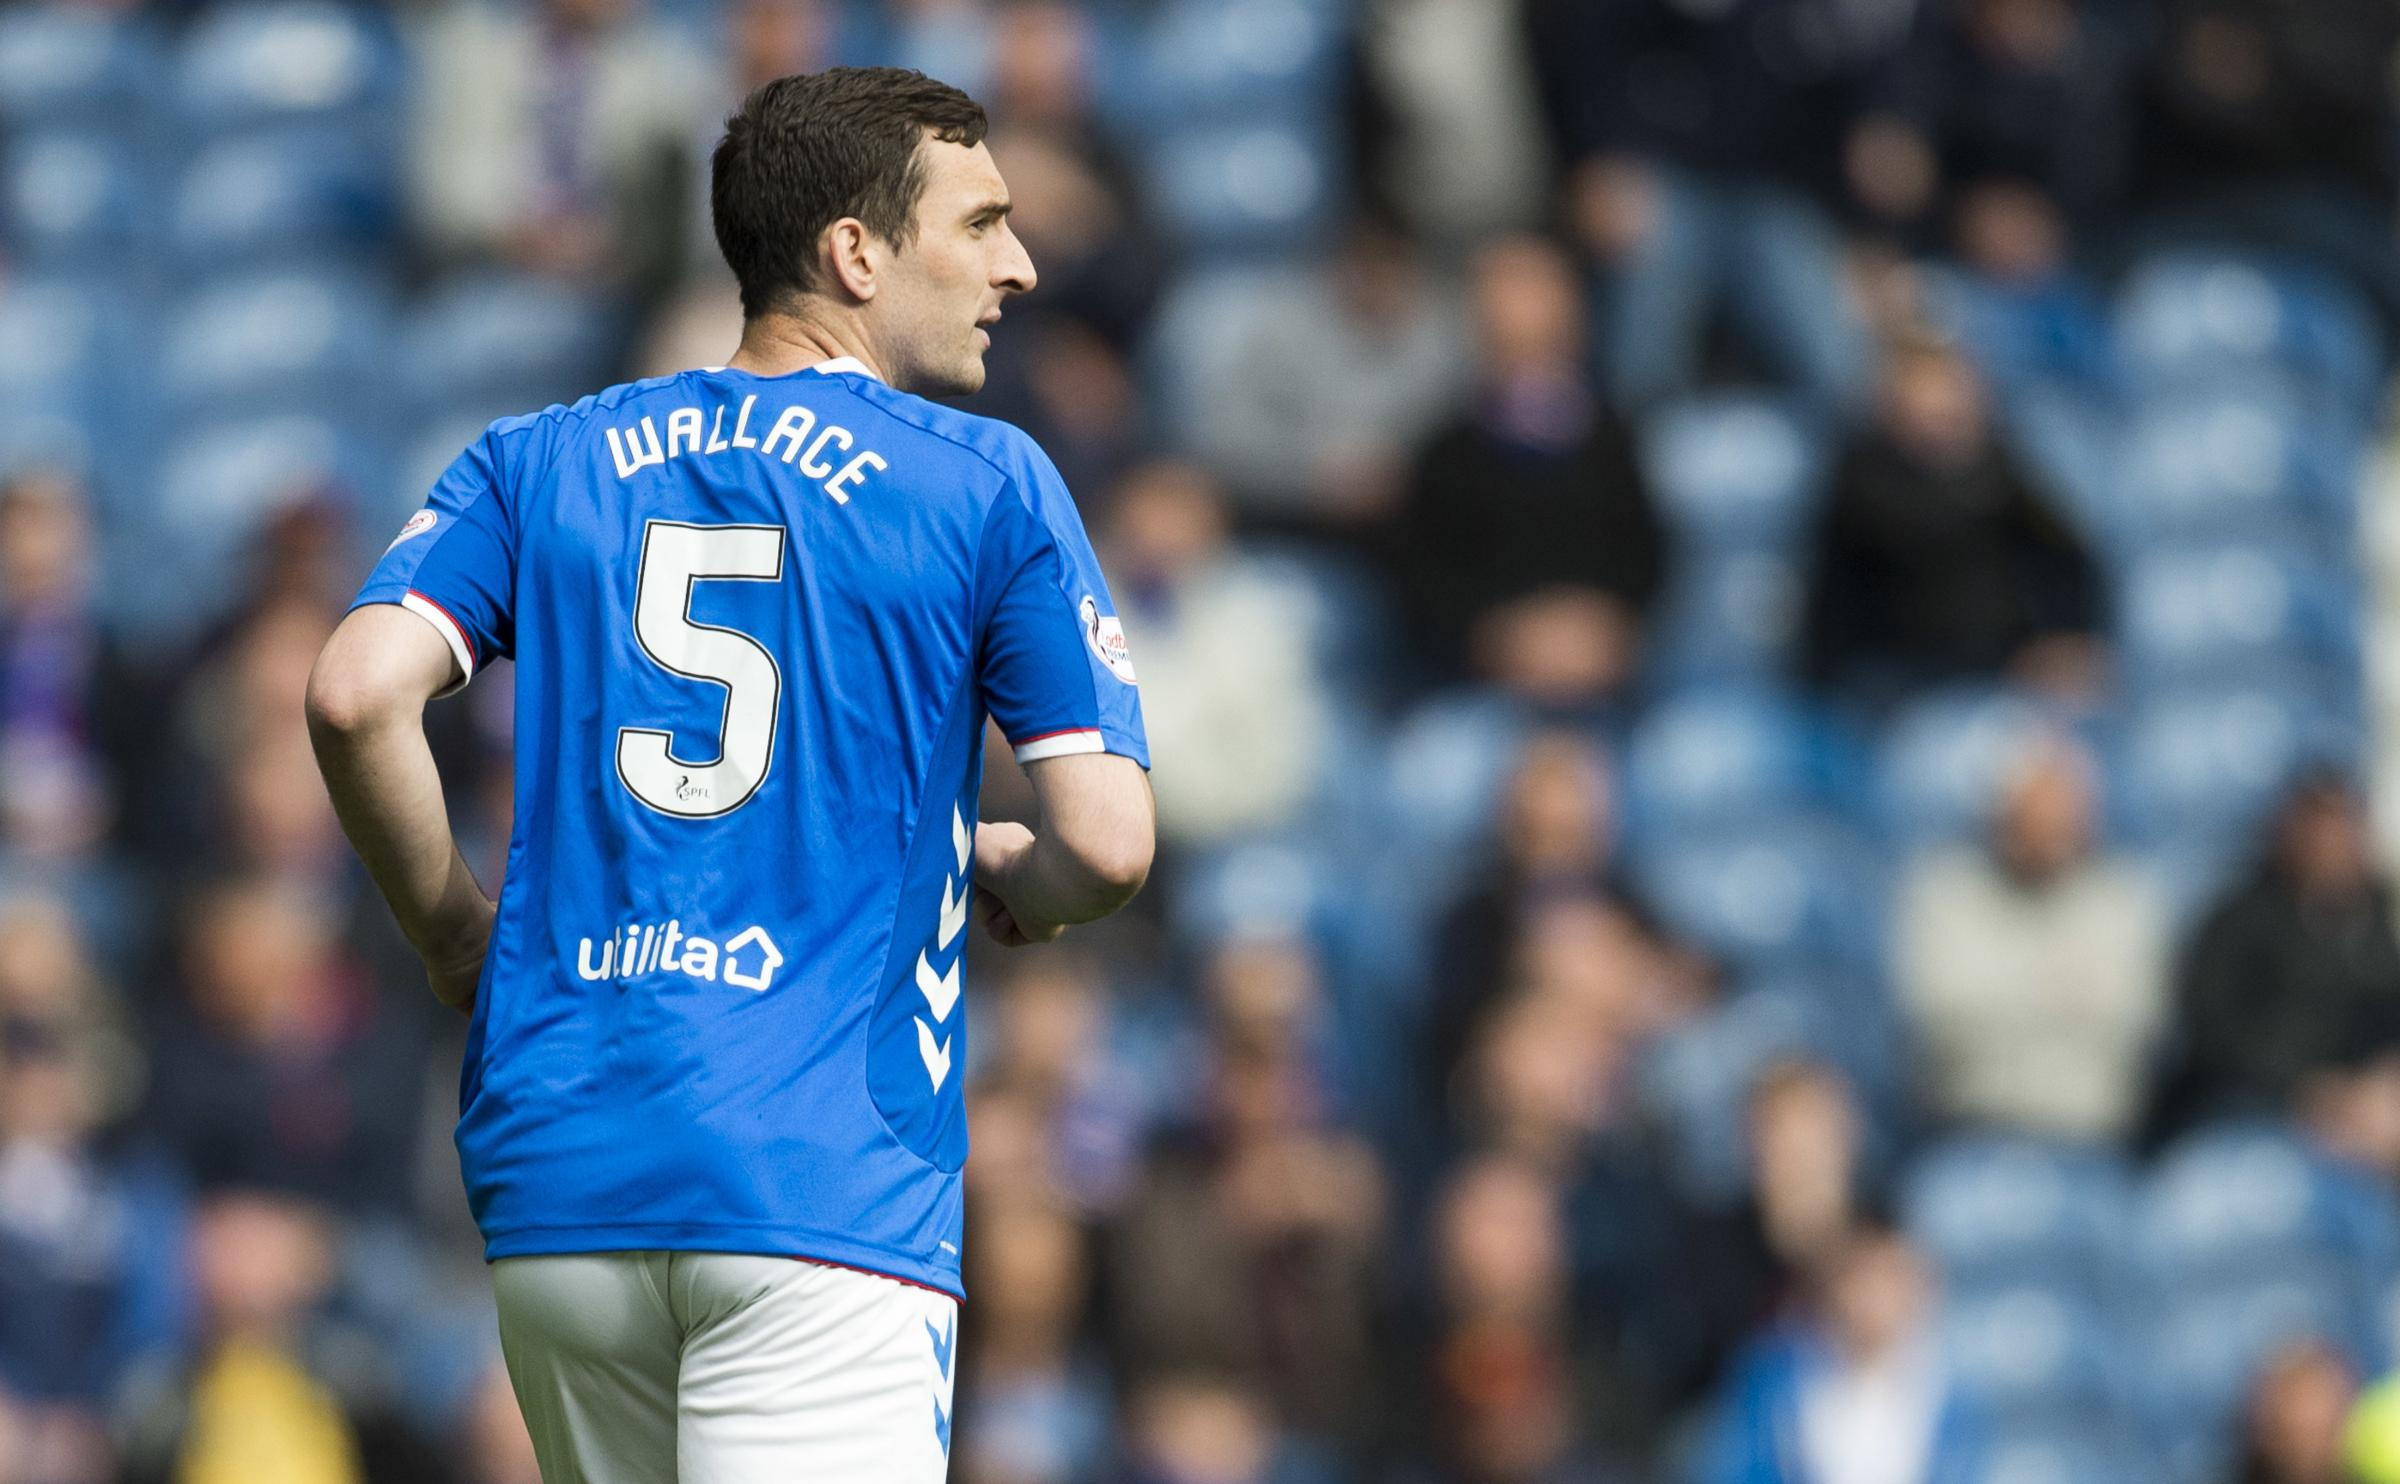 Graeme Macpherson: Lee Wallace pays a high price for loyalty to Rangers